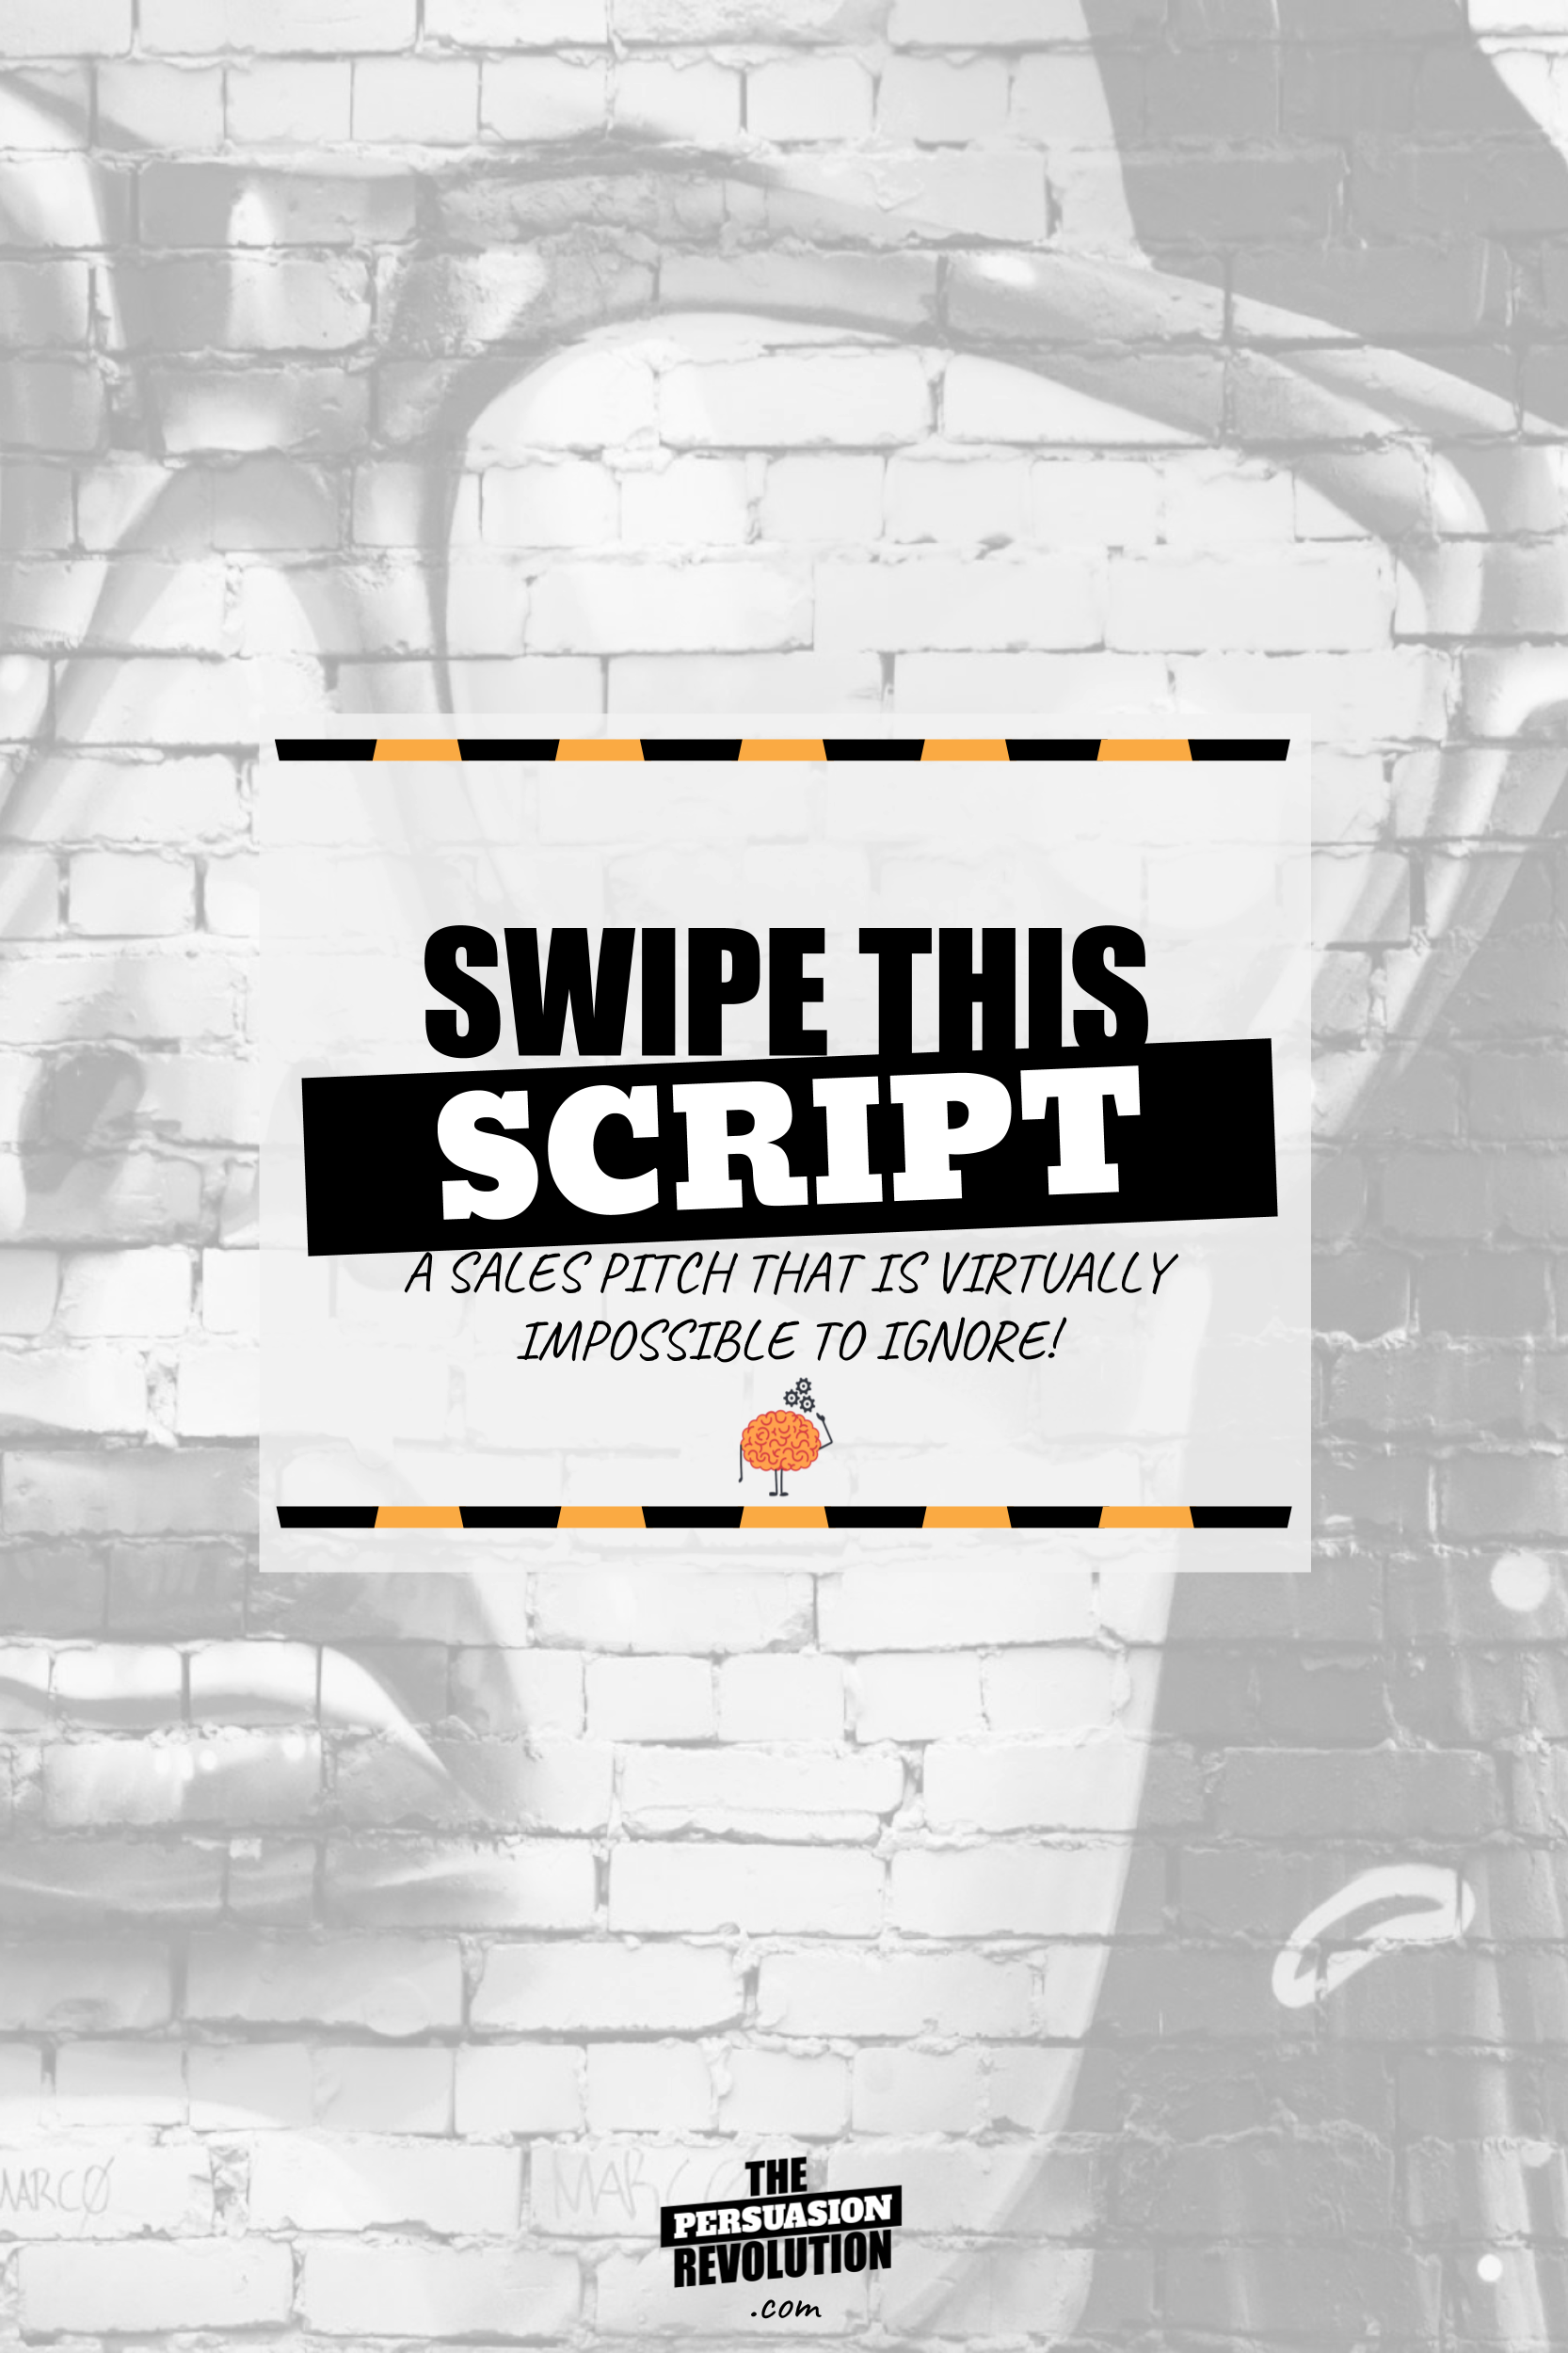 Swipe This Script: A sales pitch that is virtually impossible to ignore